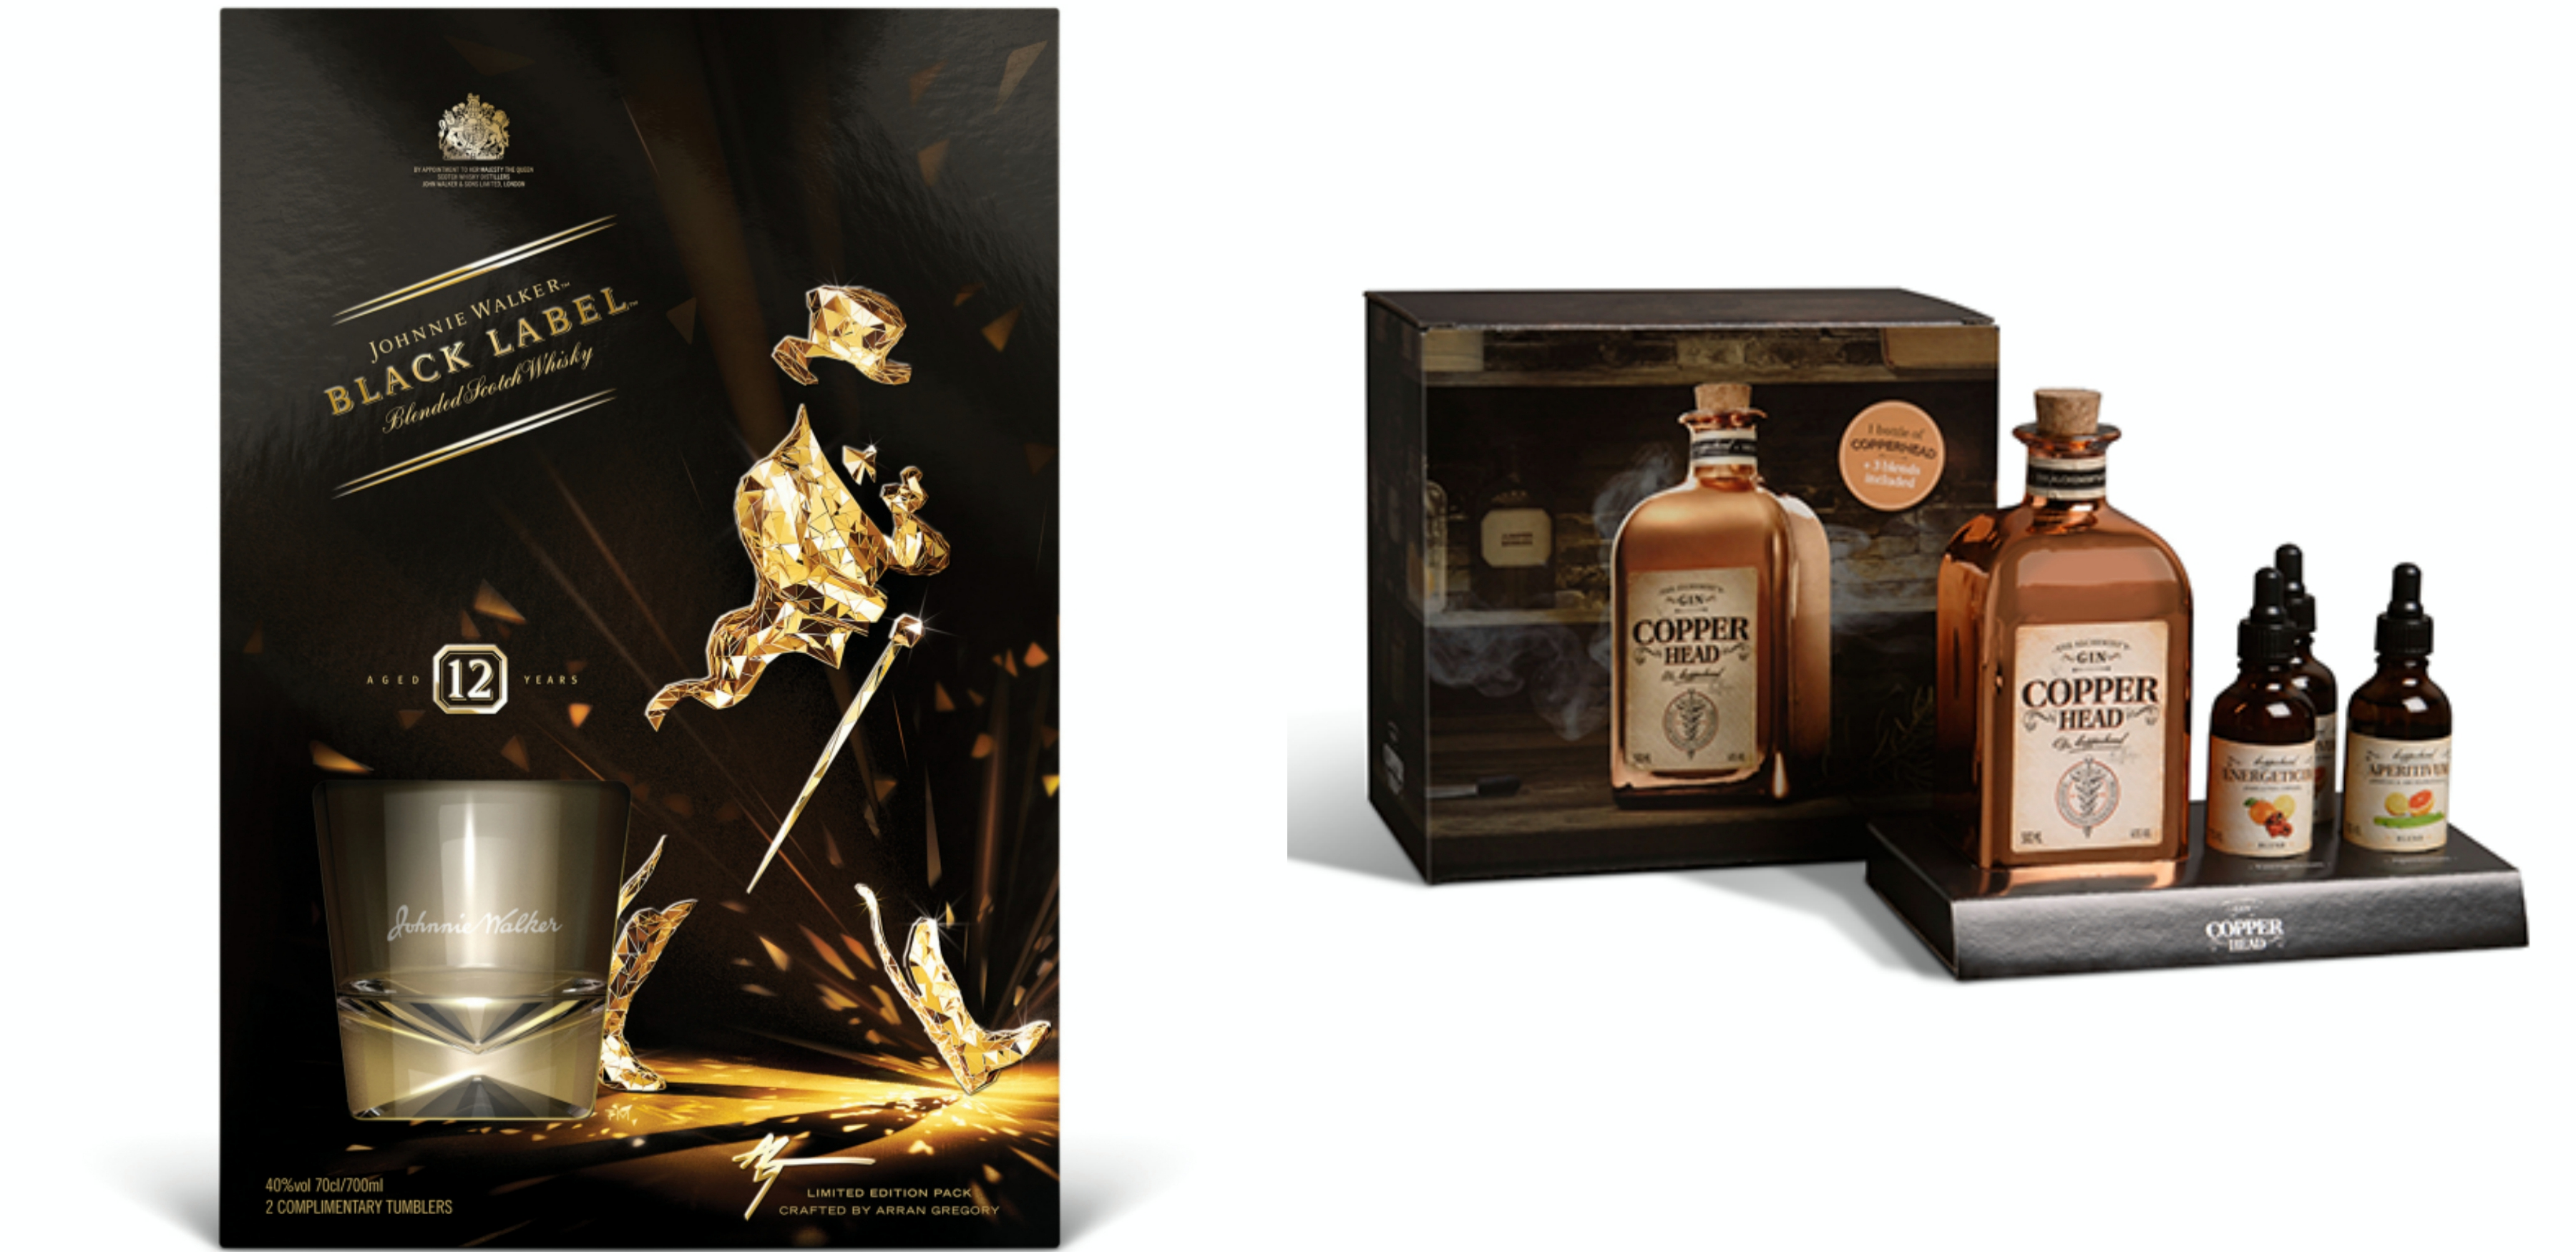 03a-johnnie-walker-black-label-2-tumblbers_Fotor_Collage_Fotor